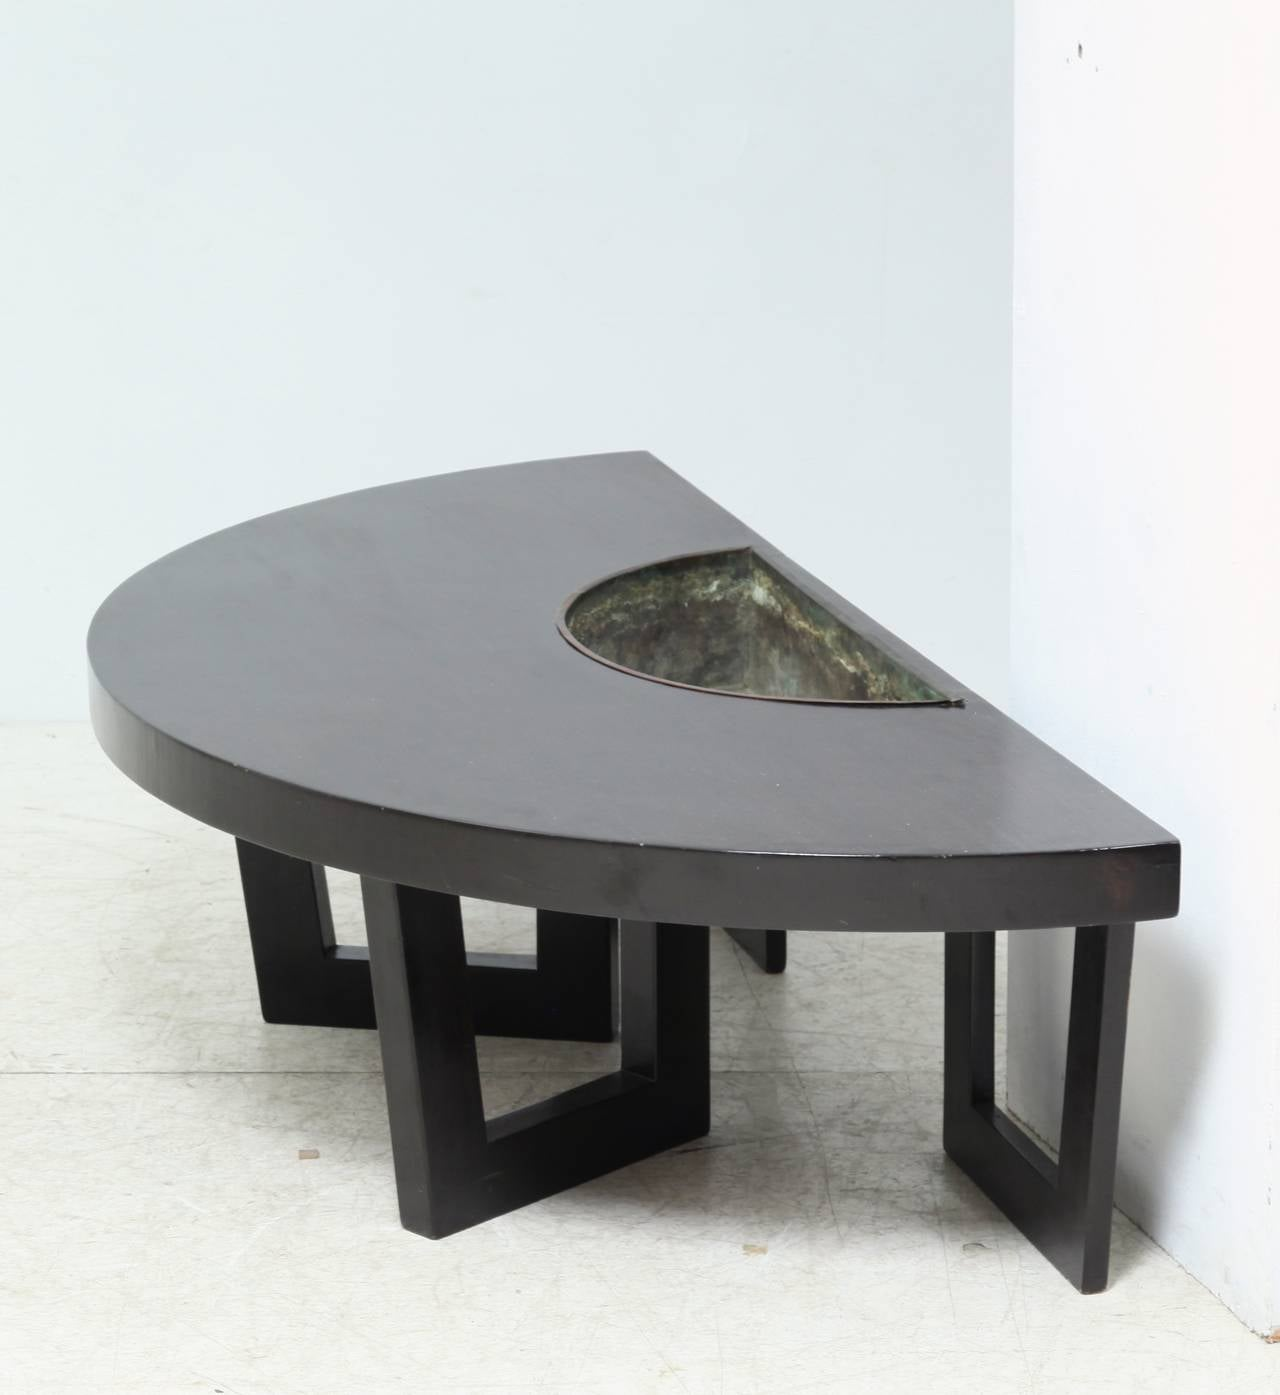 A Black Wooden Semicircular Coffee Table With Removable Copper Planter Inserted This Is